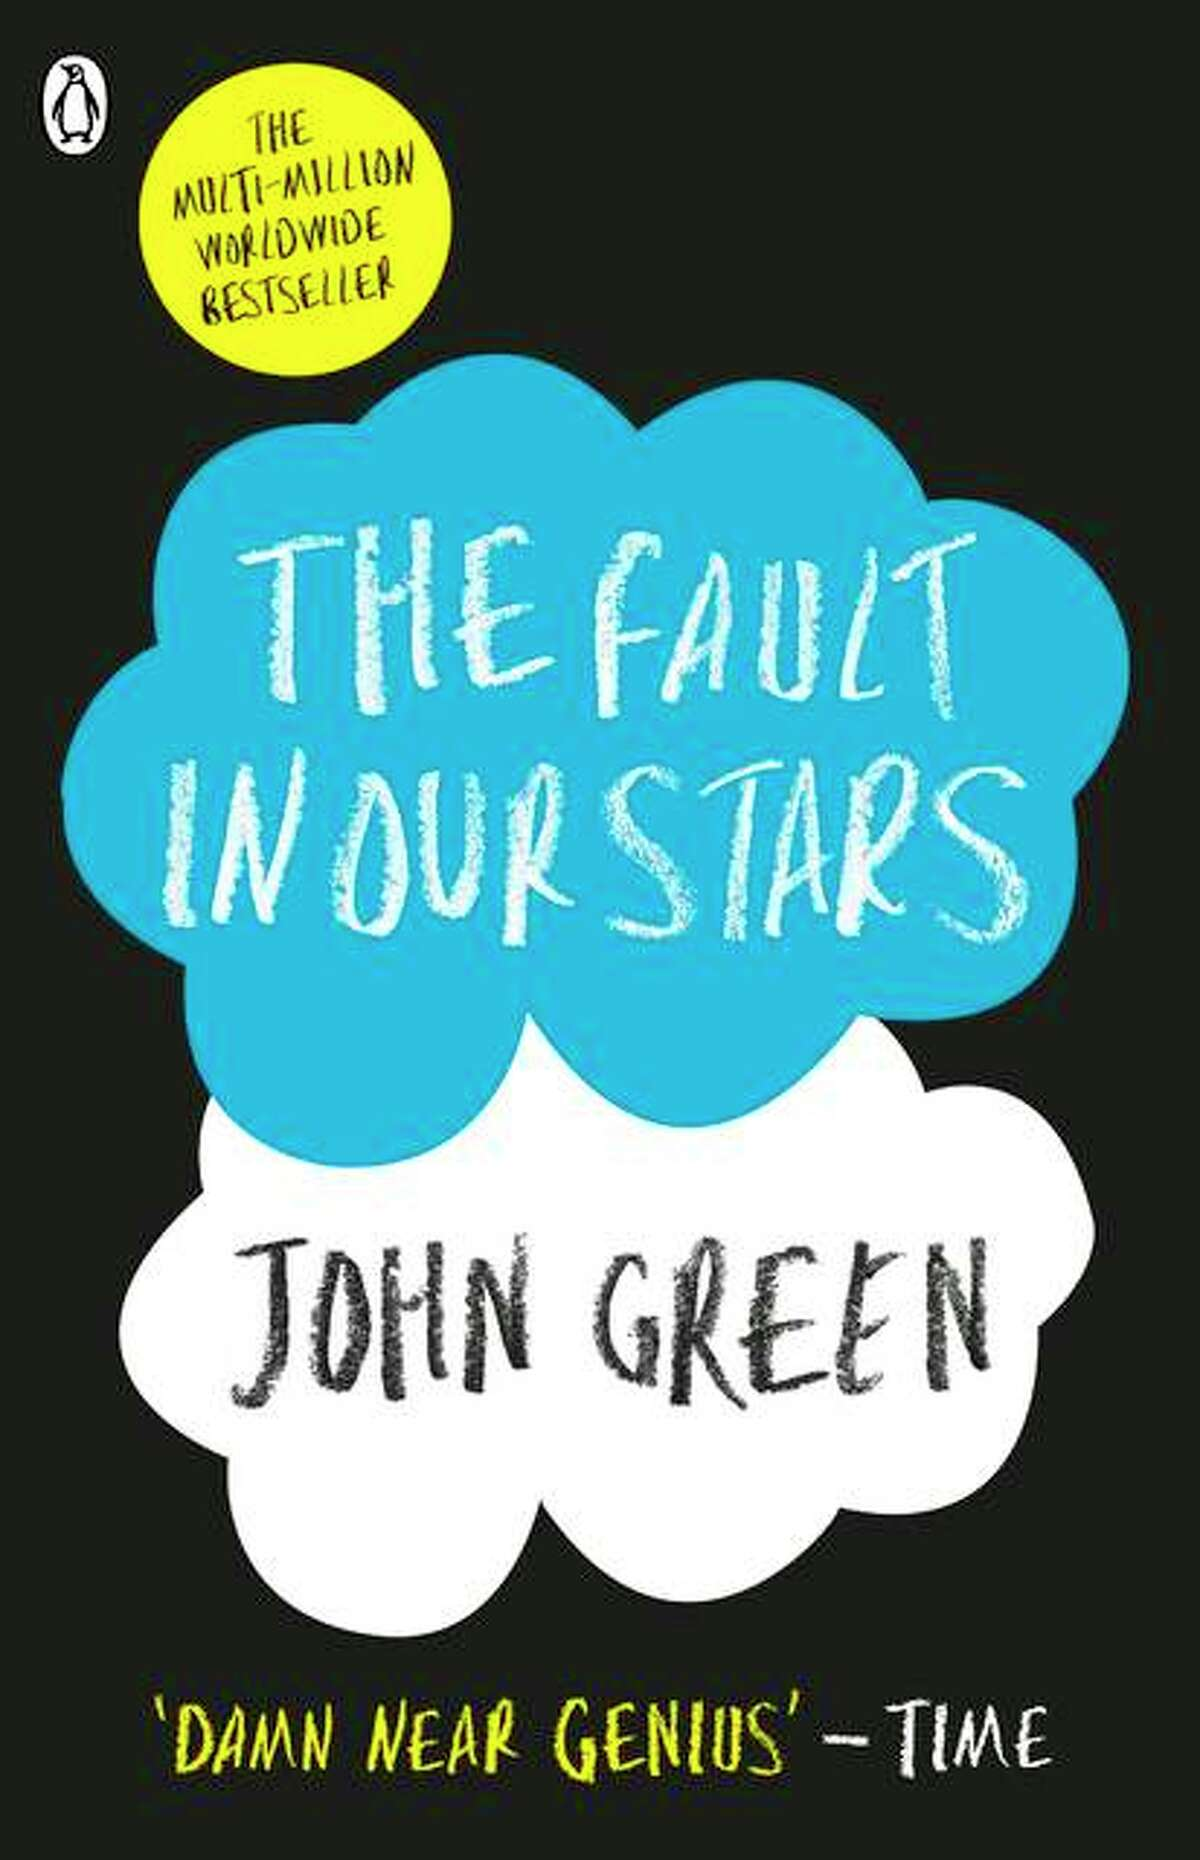 """The No. 1 best-selling book of the decade according to biography-writing service StoryTerrace is """"The Fault in Our Stars,"""" by John Green. It sold 23 million copies worldwide."""